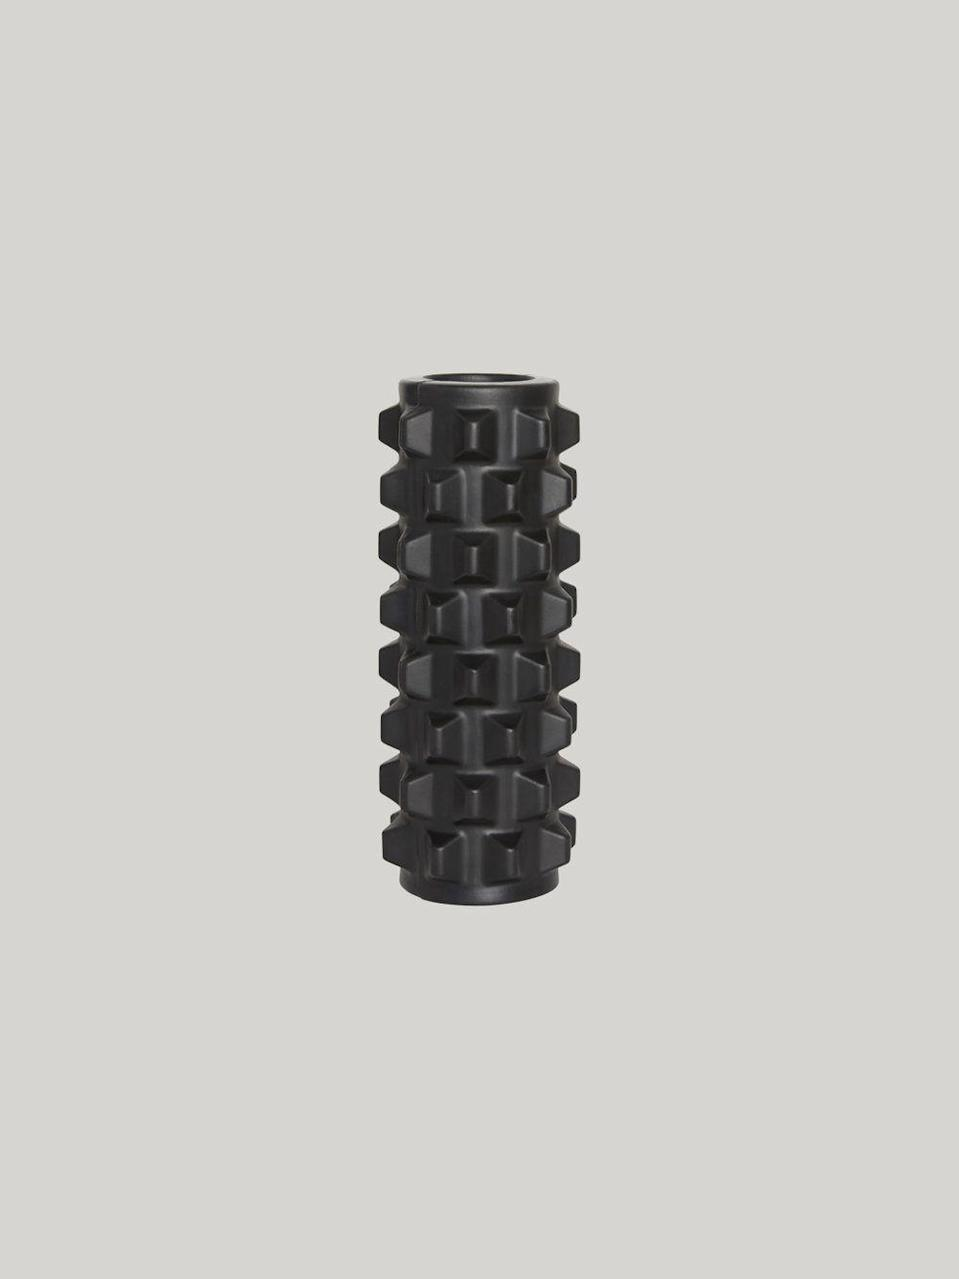 """<p>barrys.com</p><p><strong>$10.00</strong></p><p><a href=""""https://shop.barrys.com/collections/barrys-at-home/products/foam-roller-small"""" rel=""""nofollow noopener"""" target=""""_blank"""" data-ylk=""""slk:Shop Now"""" class=""""link rapid-noclick-resp"""">Shop Now</a></p>"""